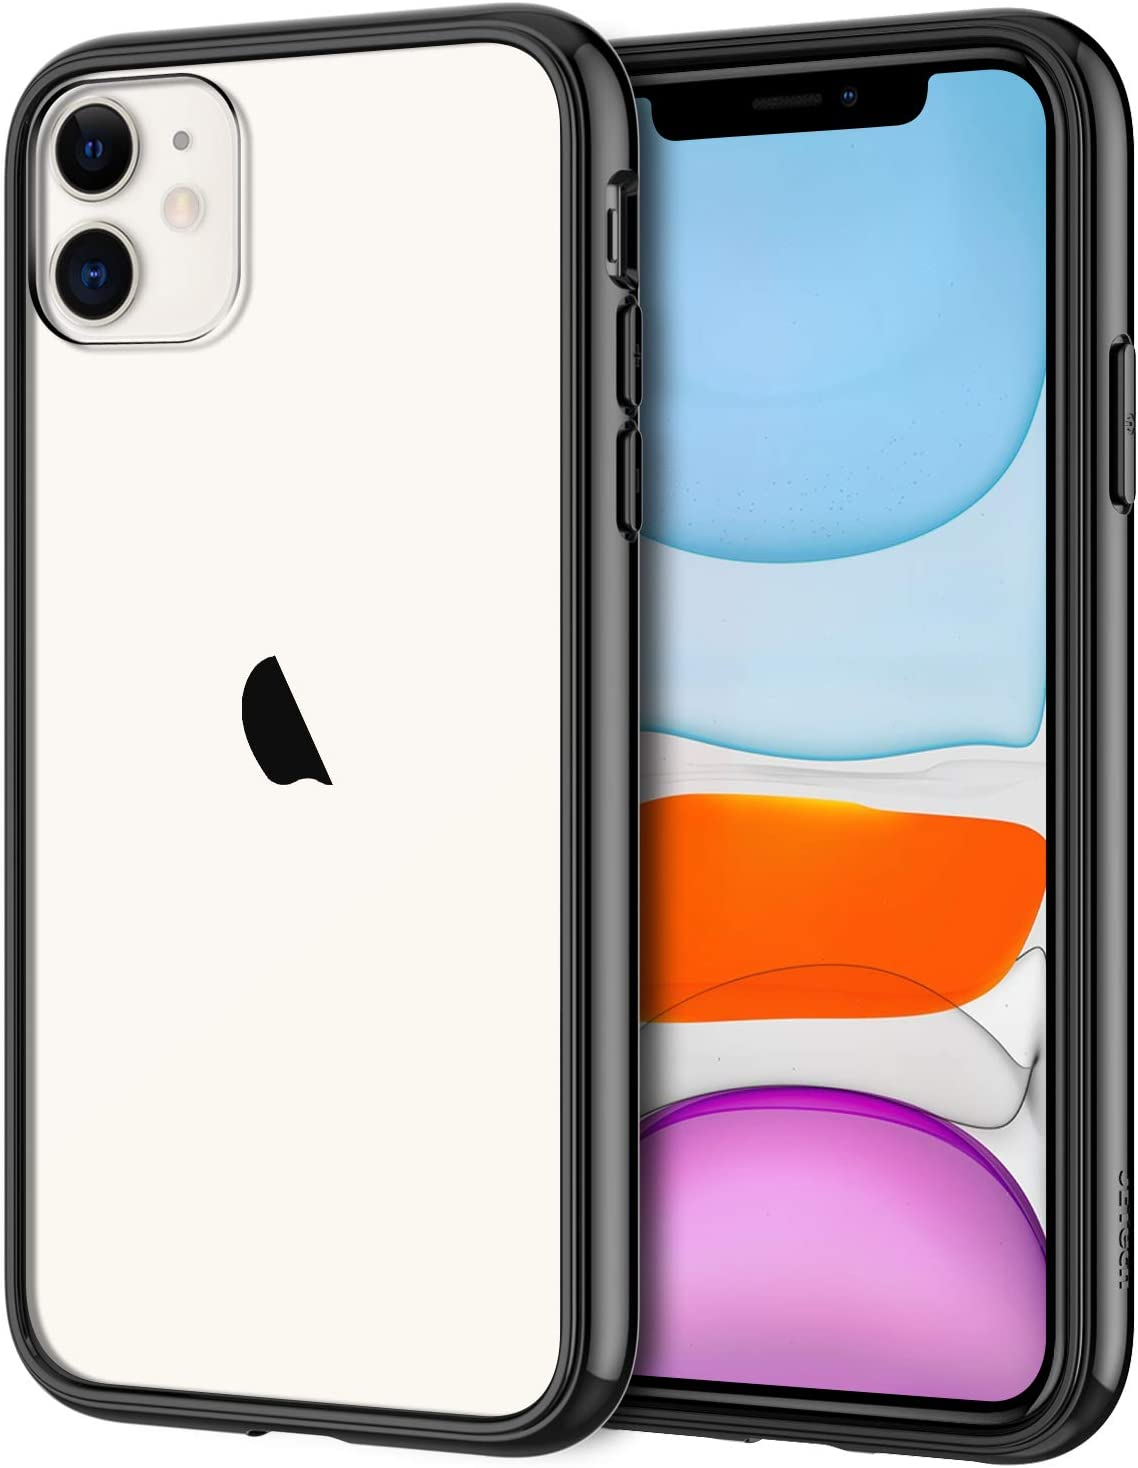 JETech Case for iPhone 11 (2019), 6.1-Inch, Shockproof Bumper Cover, Anti-Scratch Clear Back (Black)